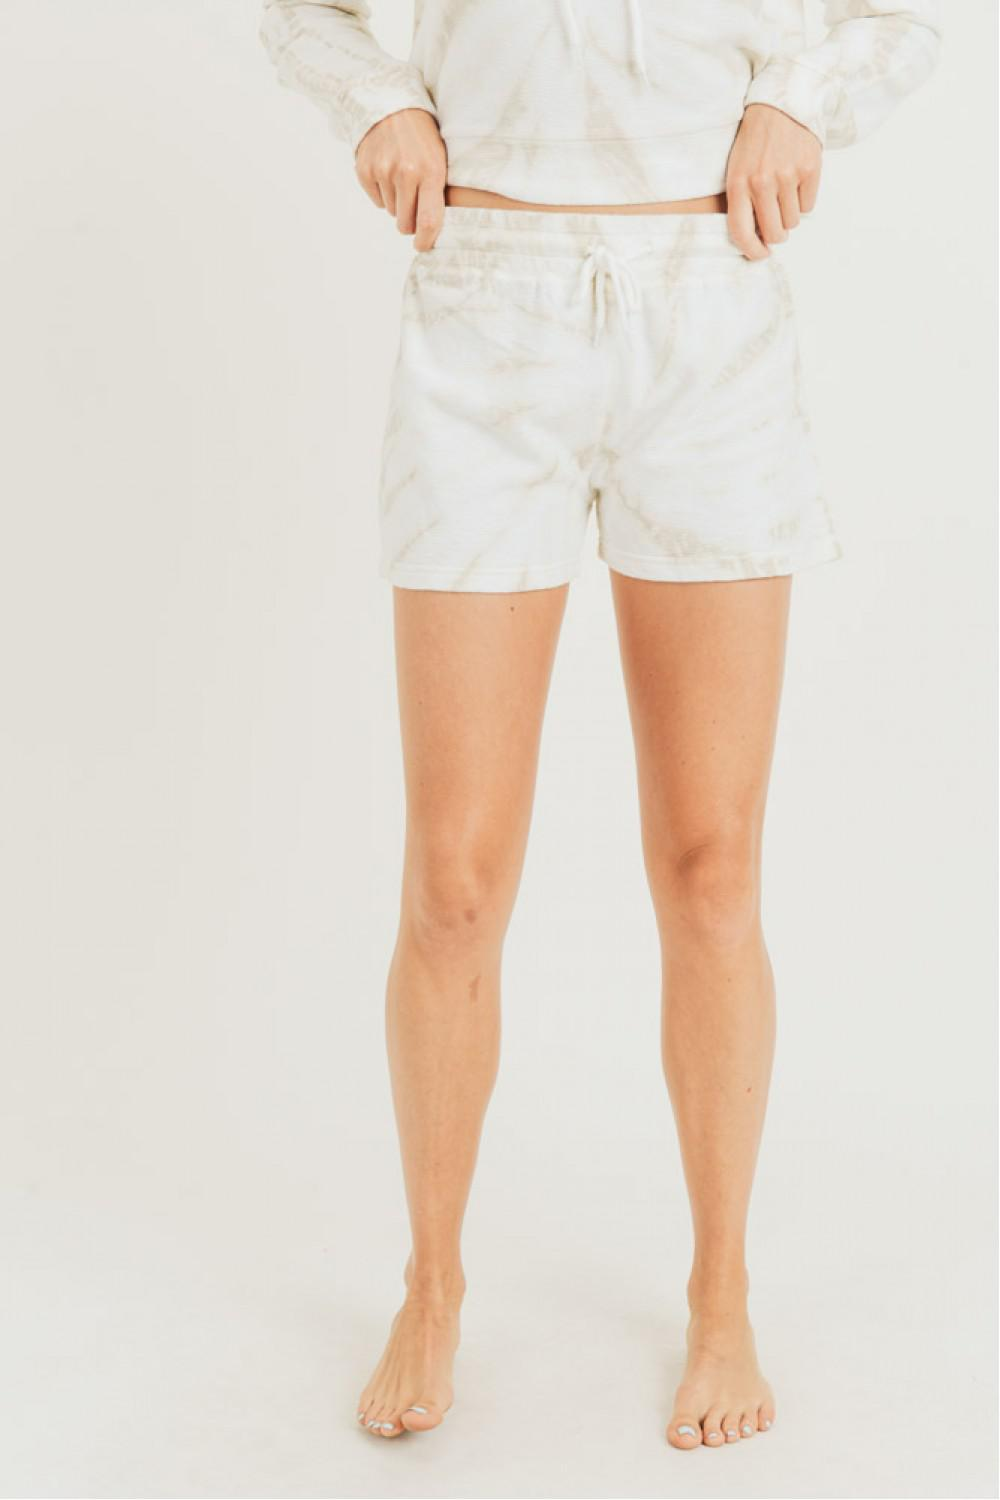 Tie-Dye Lounge Shorts - 13 Hub Lane   |